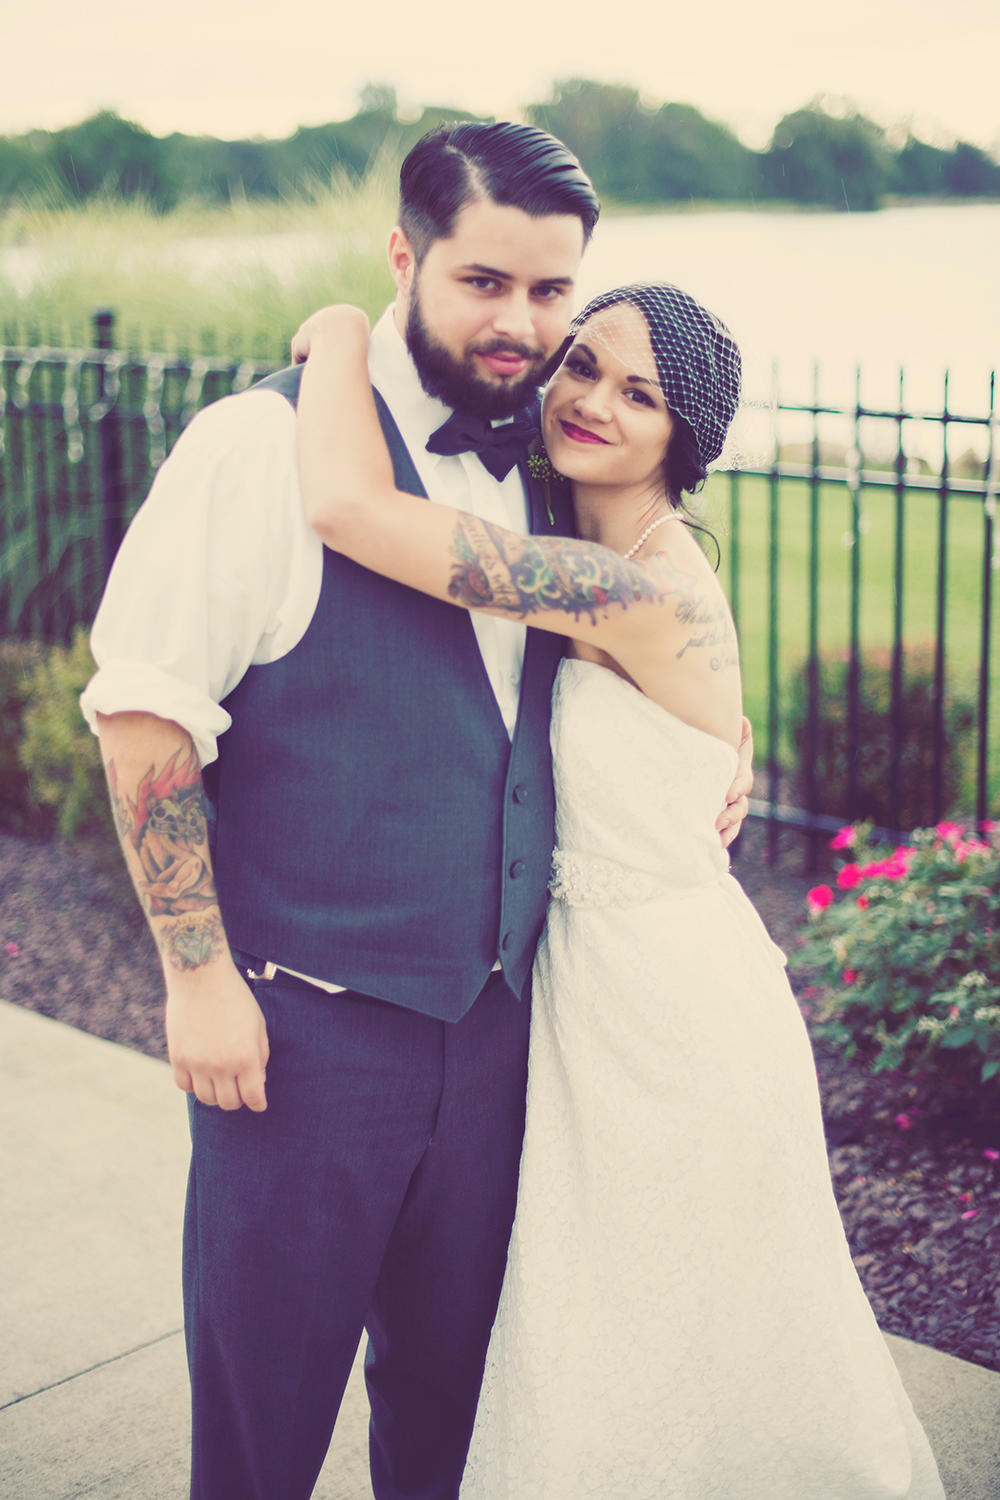 Matt And Angi Posed For A Photo After Their Church Wedding Ceremony